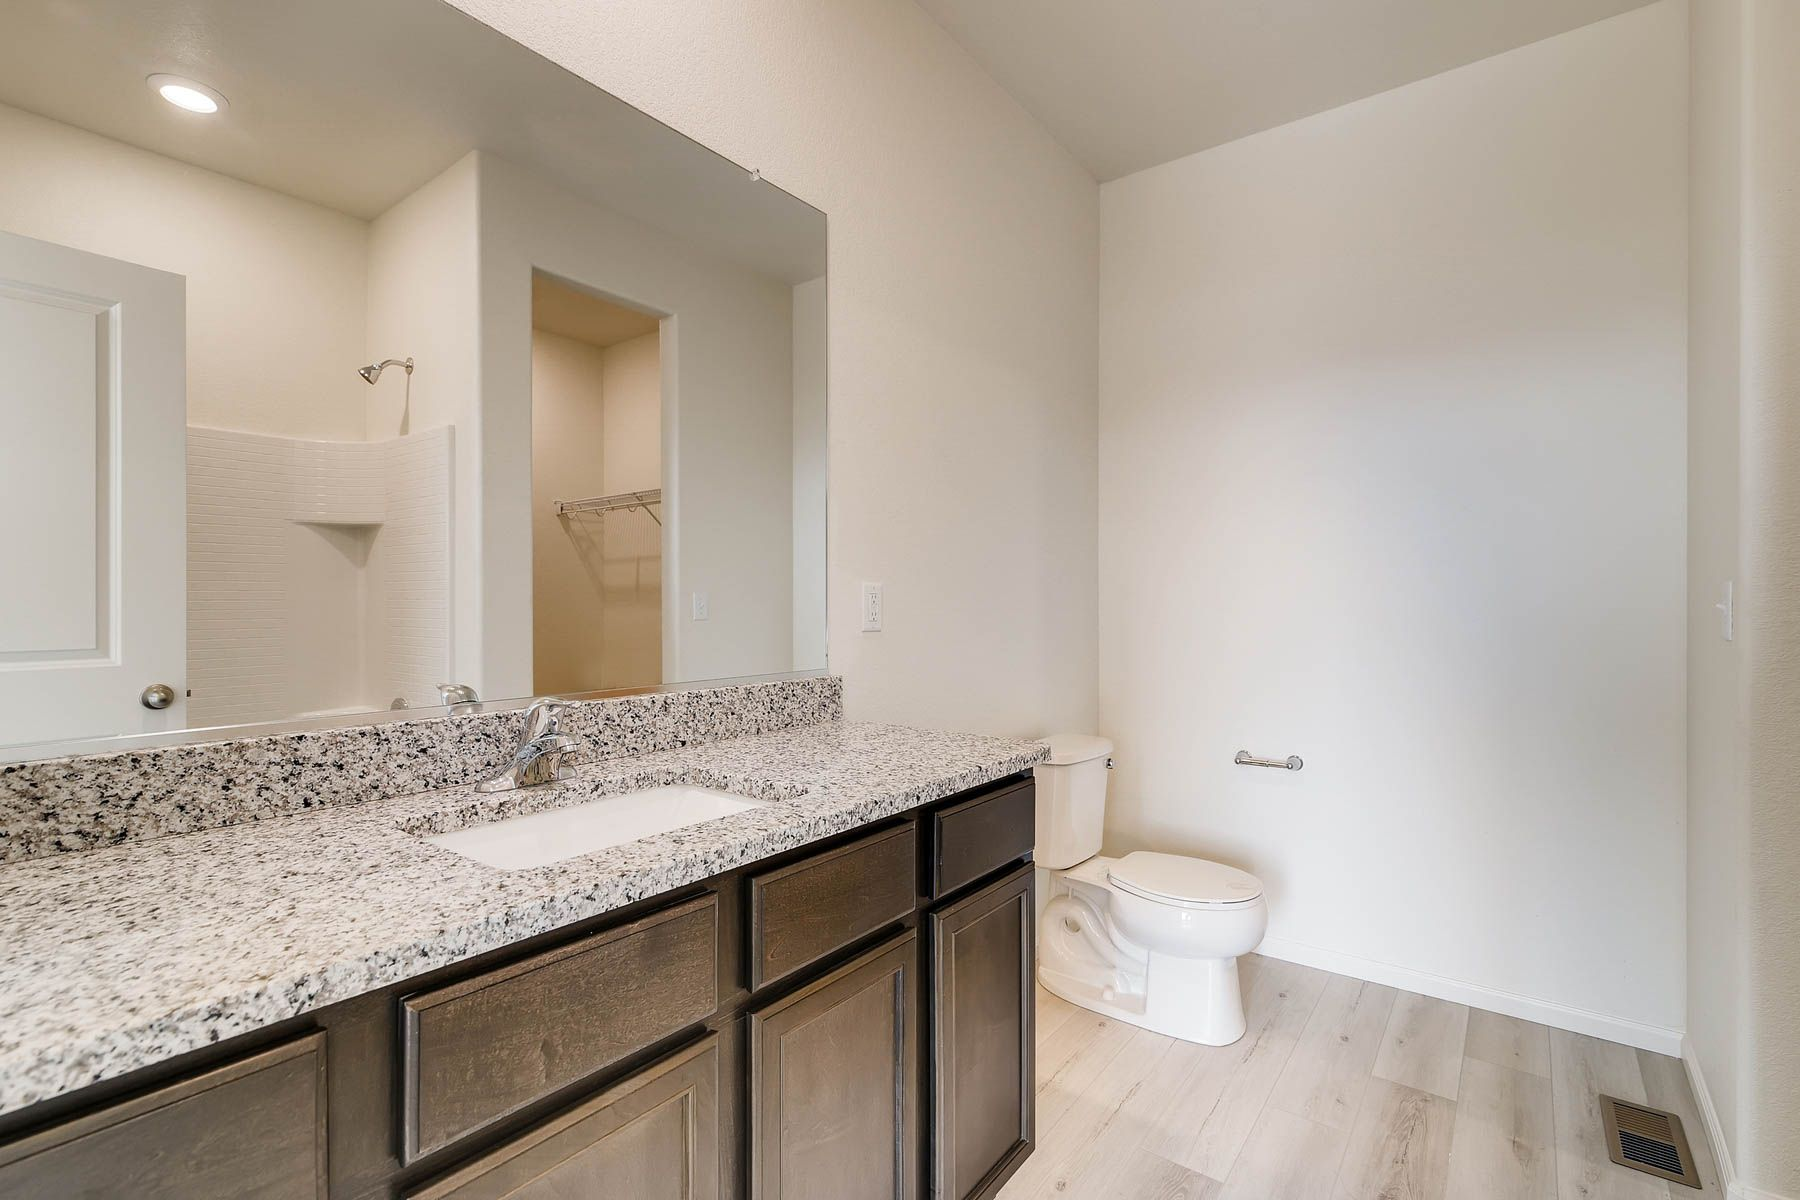 Bathroom featured in the Chatfield By LGI Homes in Greeley, CO